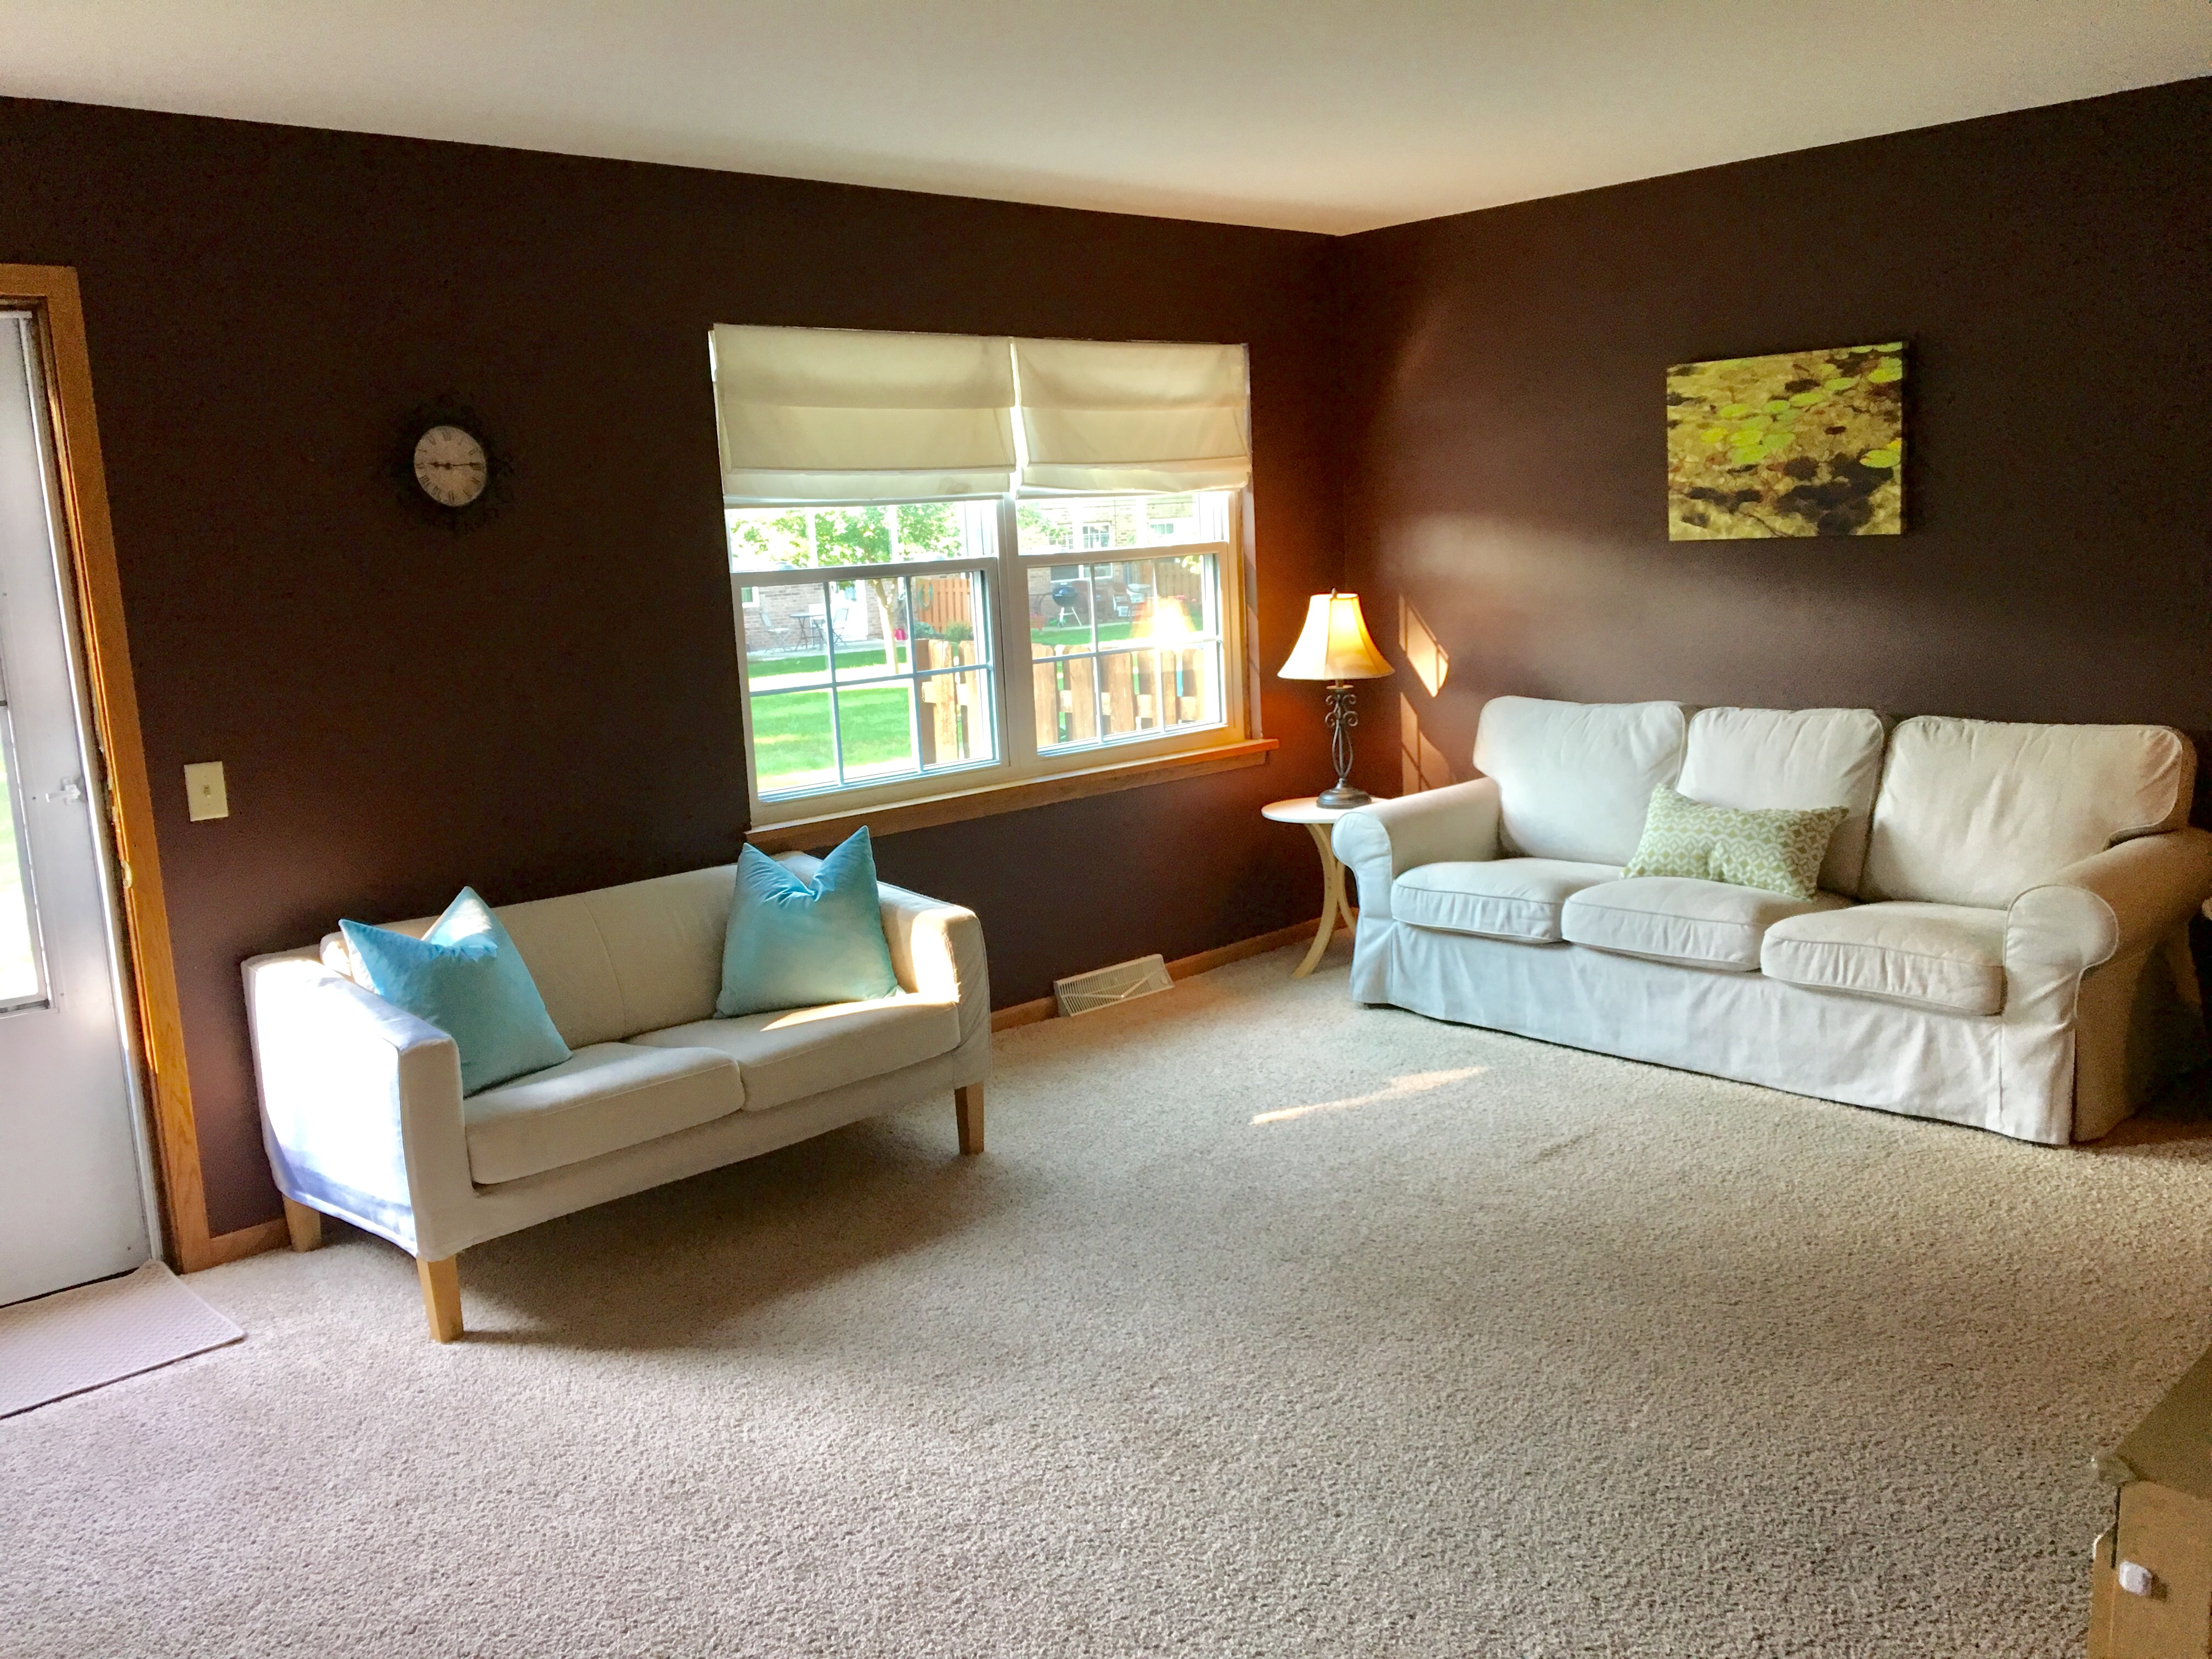 homes for sale in madison wi lauer realty group